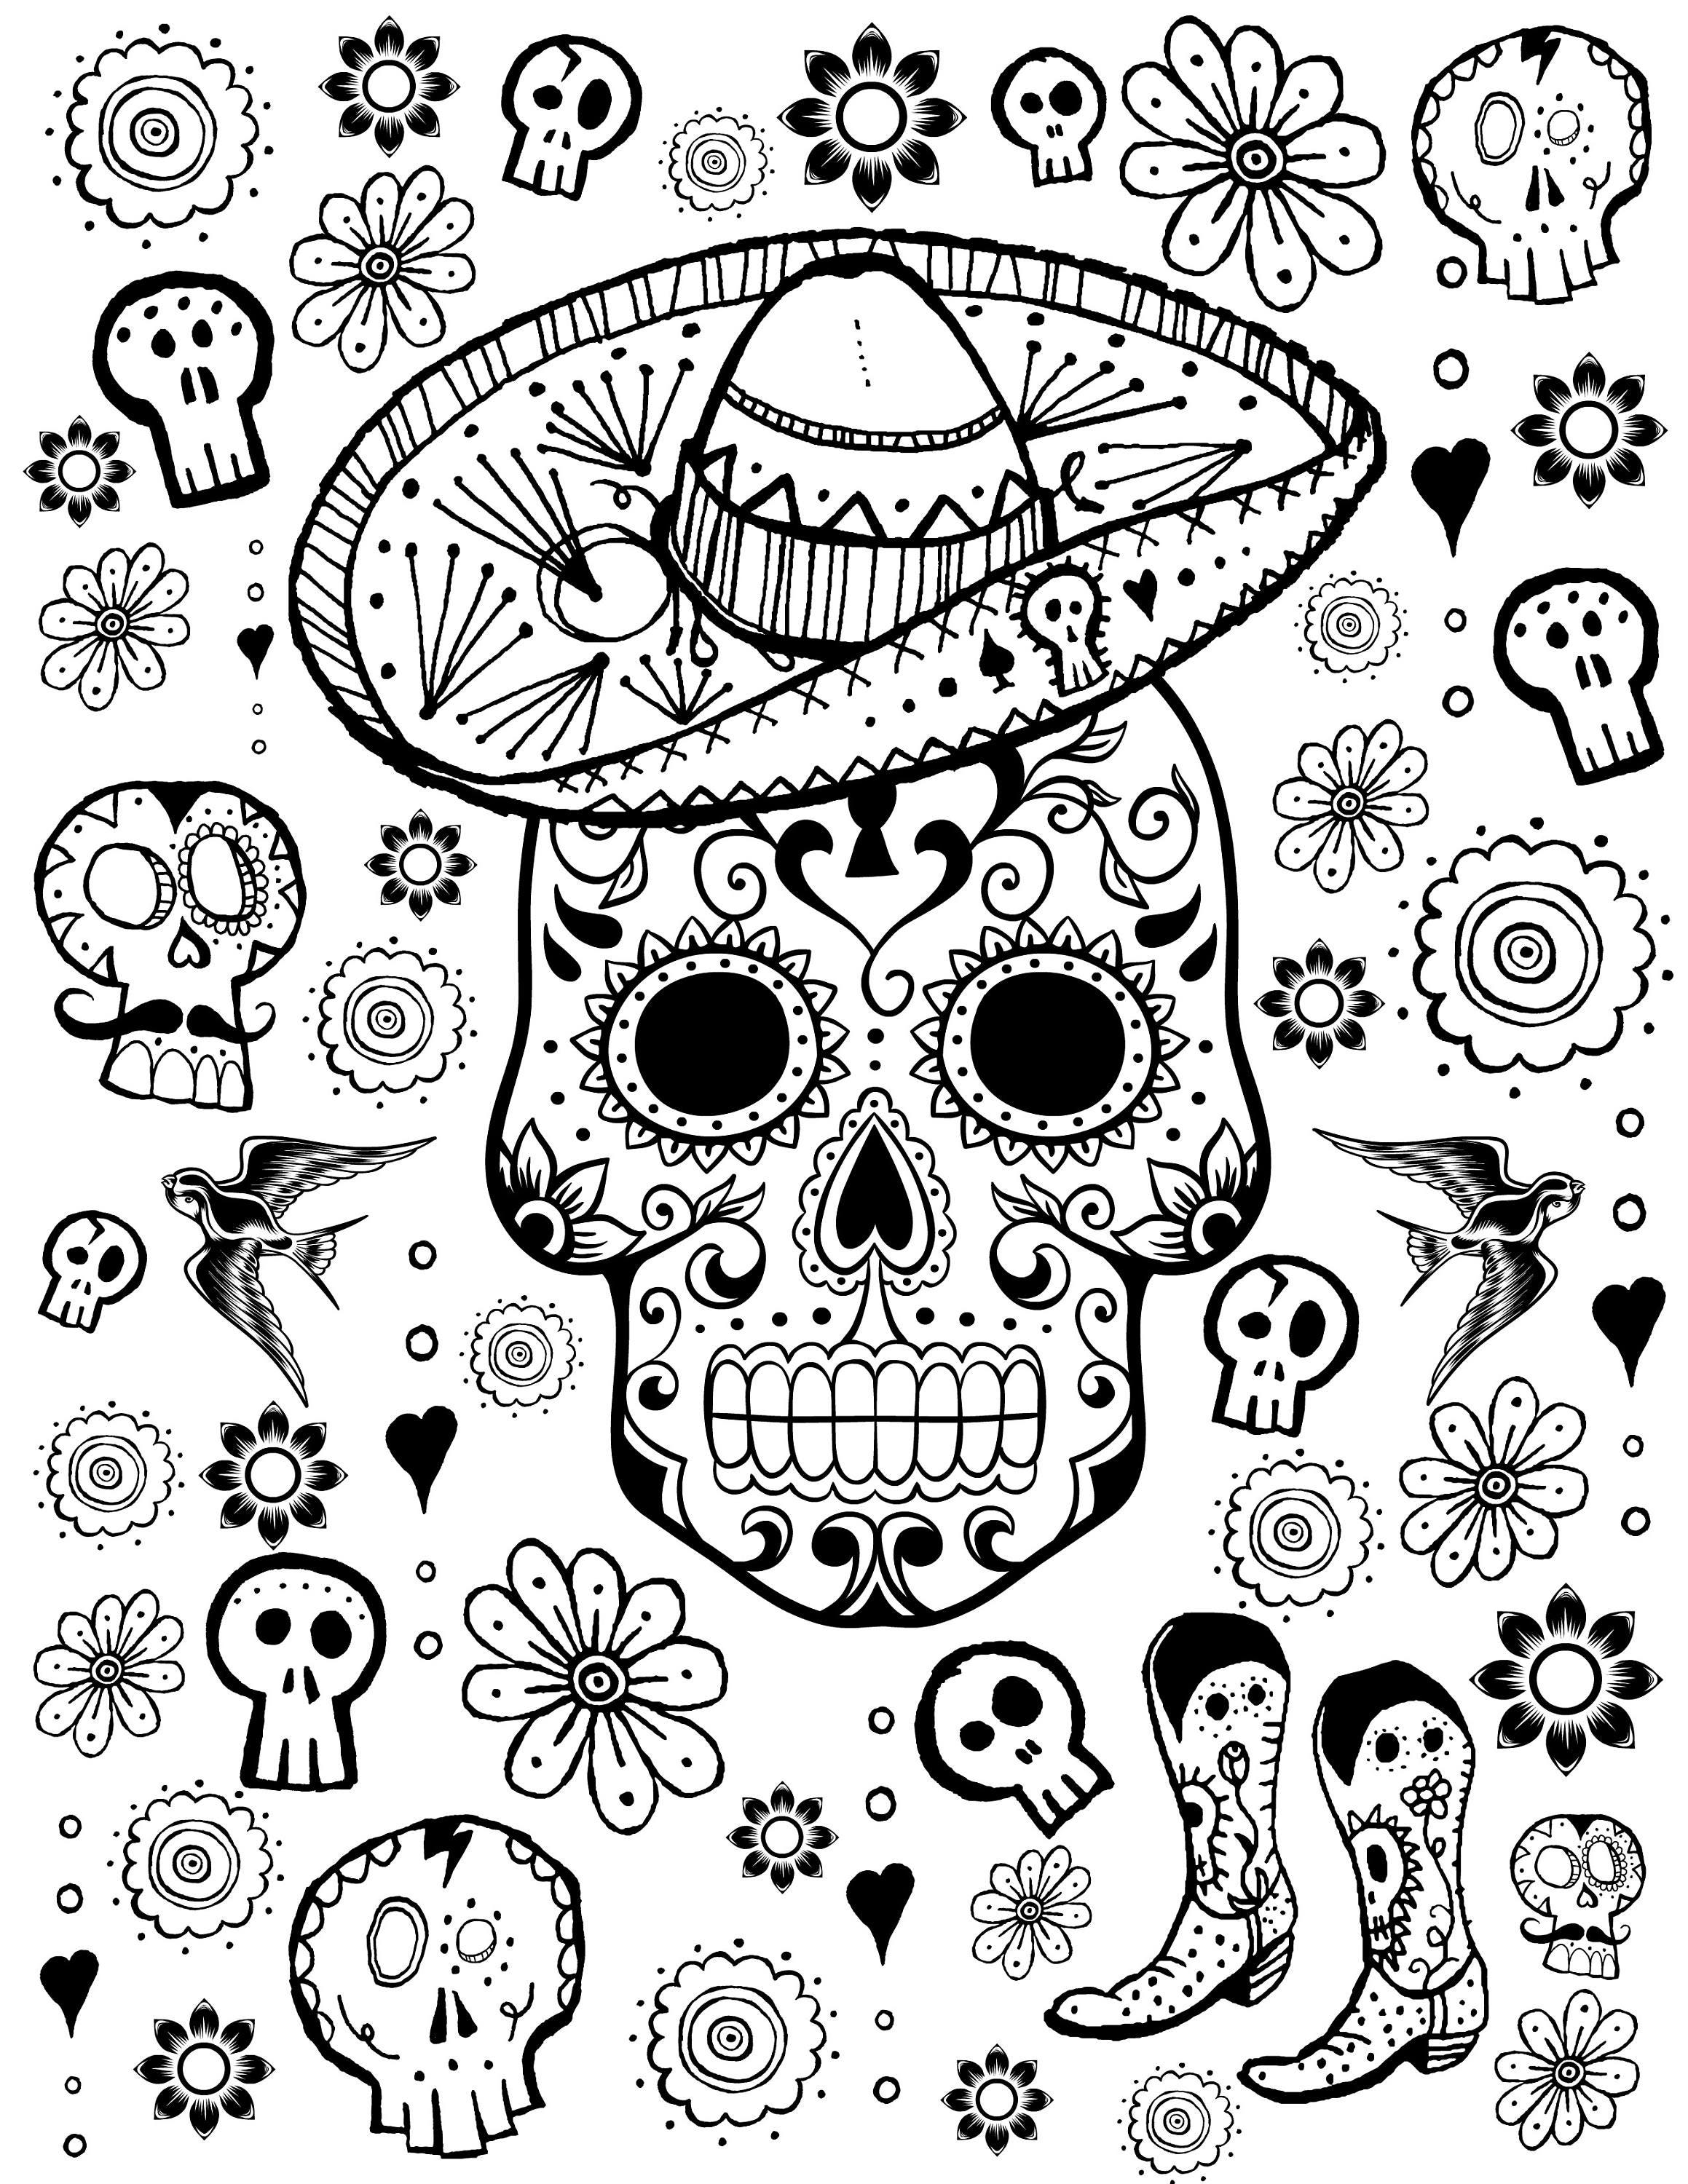 - Printable Coloring Page Kids Coloring Book Day Of The Dead Etsy